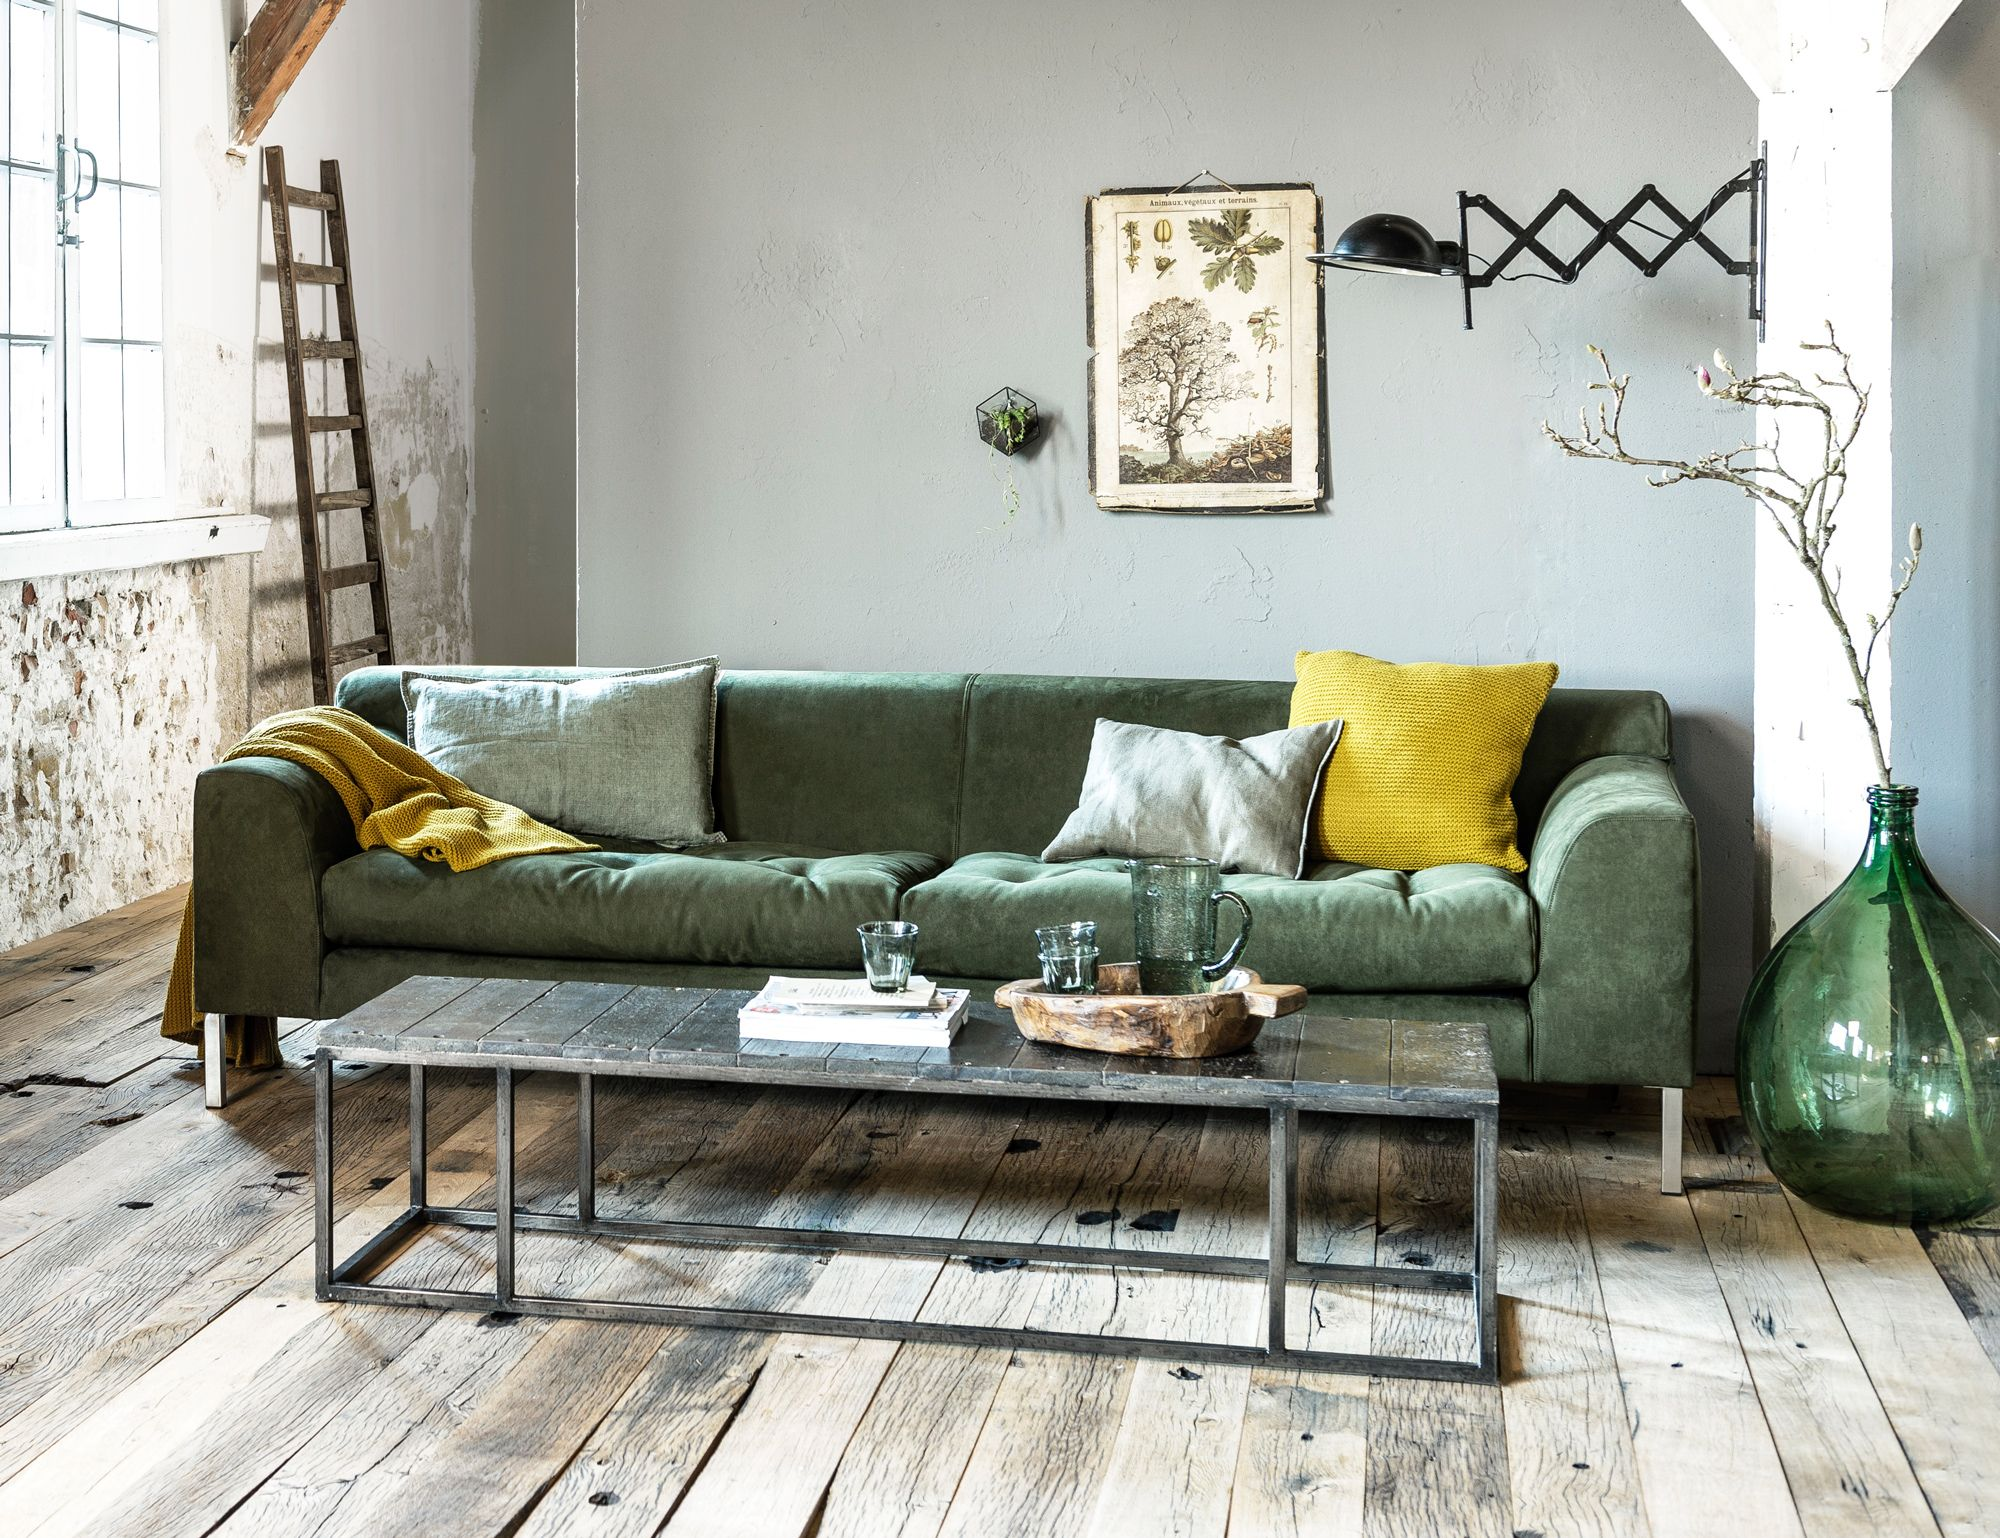 Innenarchitektur wohnzimmer lila industrial living room with pops of green and yellow and a wooden